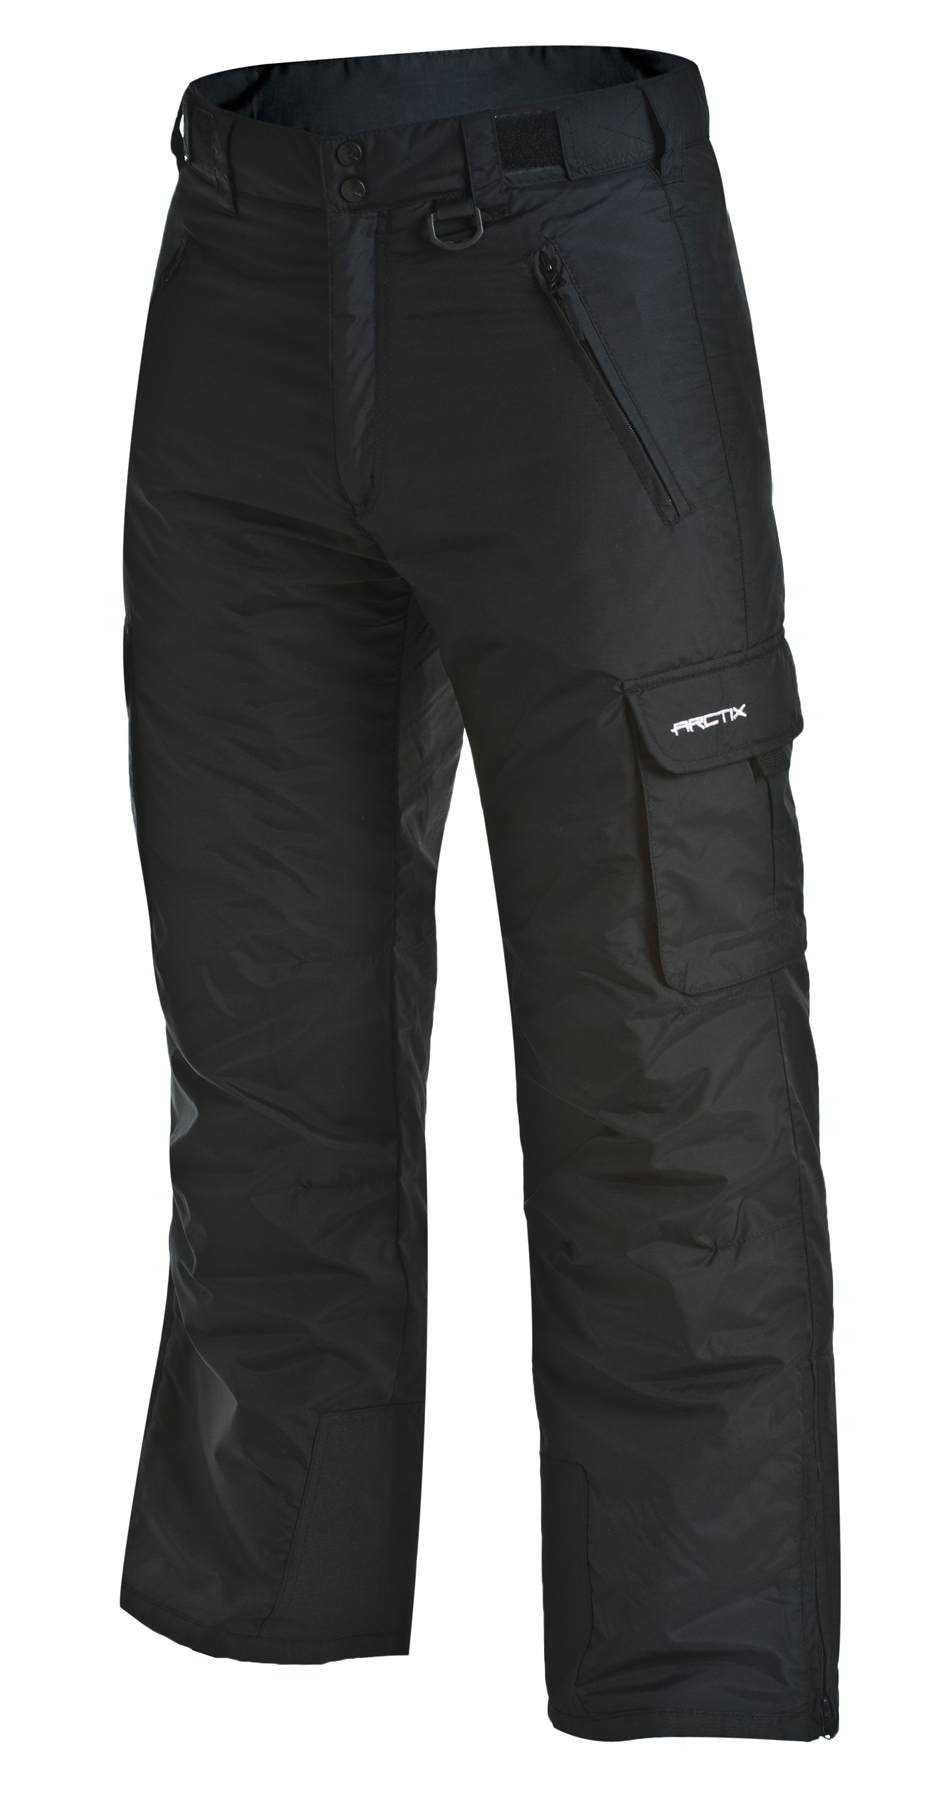 Columbia is your destination for men's snow pants that are durable, reliable, and comfortable. Stay warm and protected in styles crafted of quality fabric and offering functional features like leg venting, adjustable waists, leg zippers, multiple pockets, and 4-way stretch for ultimate comfort and mobility.